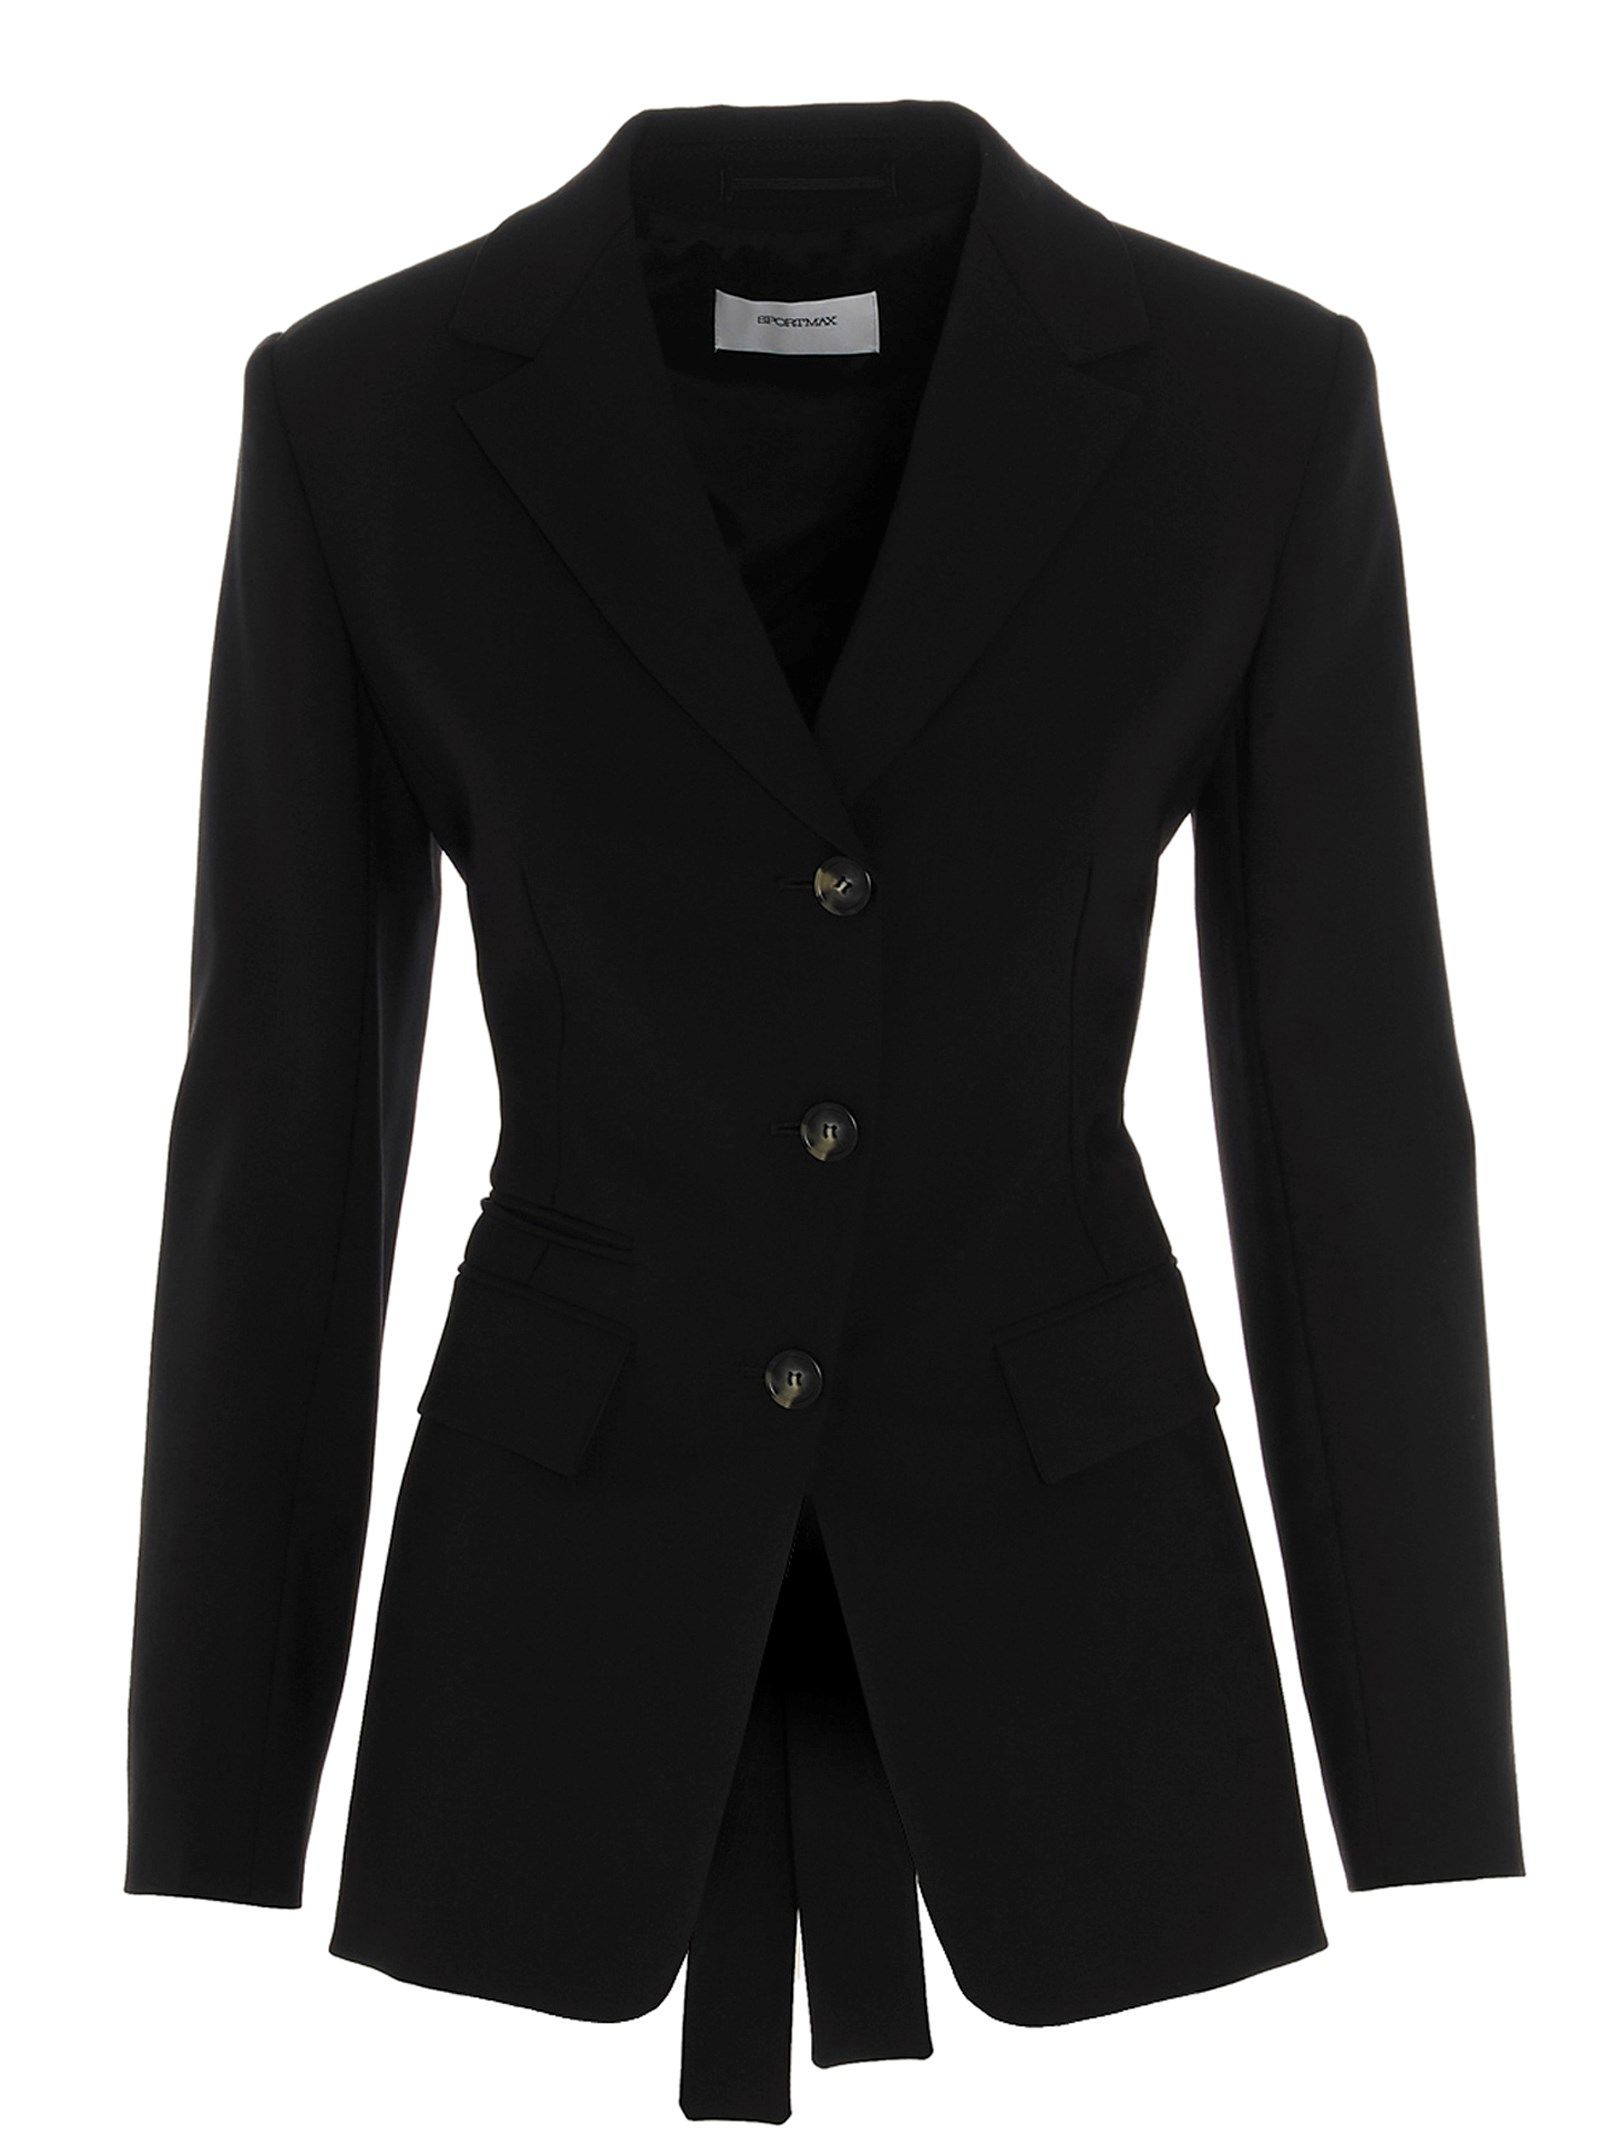 Sportmax SPORTMAX WOMEN'S 20410117600278002 BLACK OTHER MATERIALS BLAZER